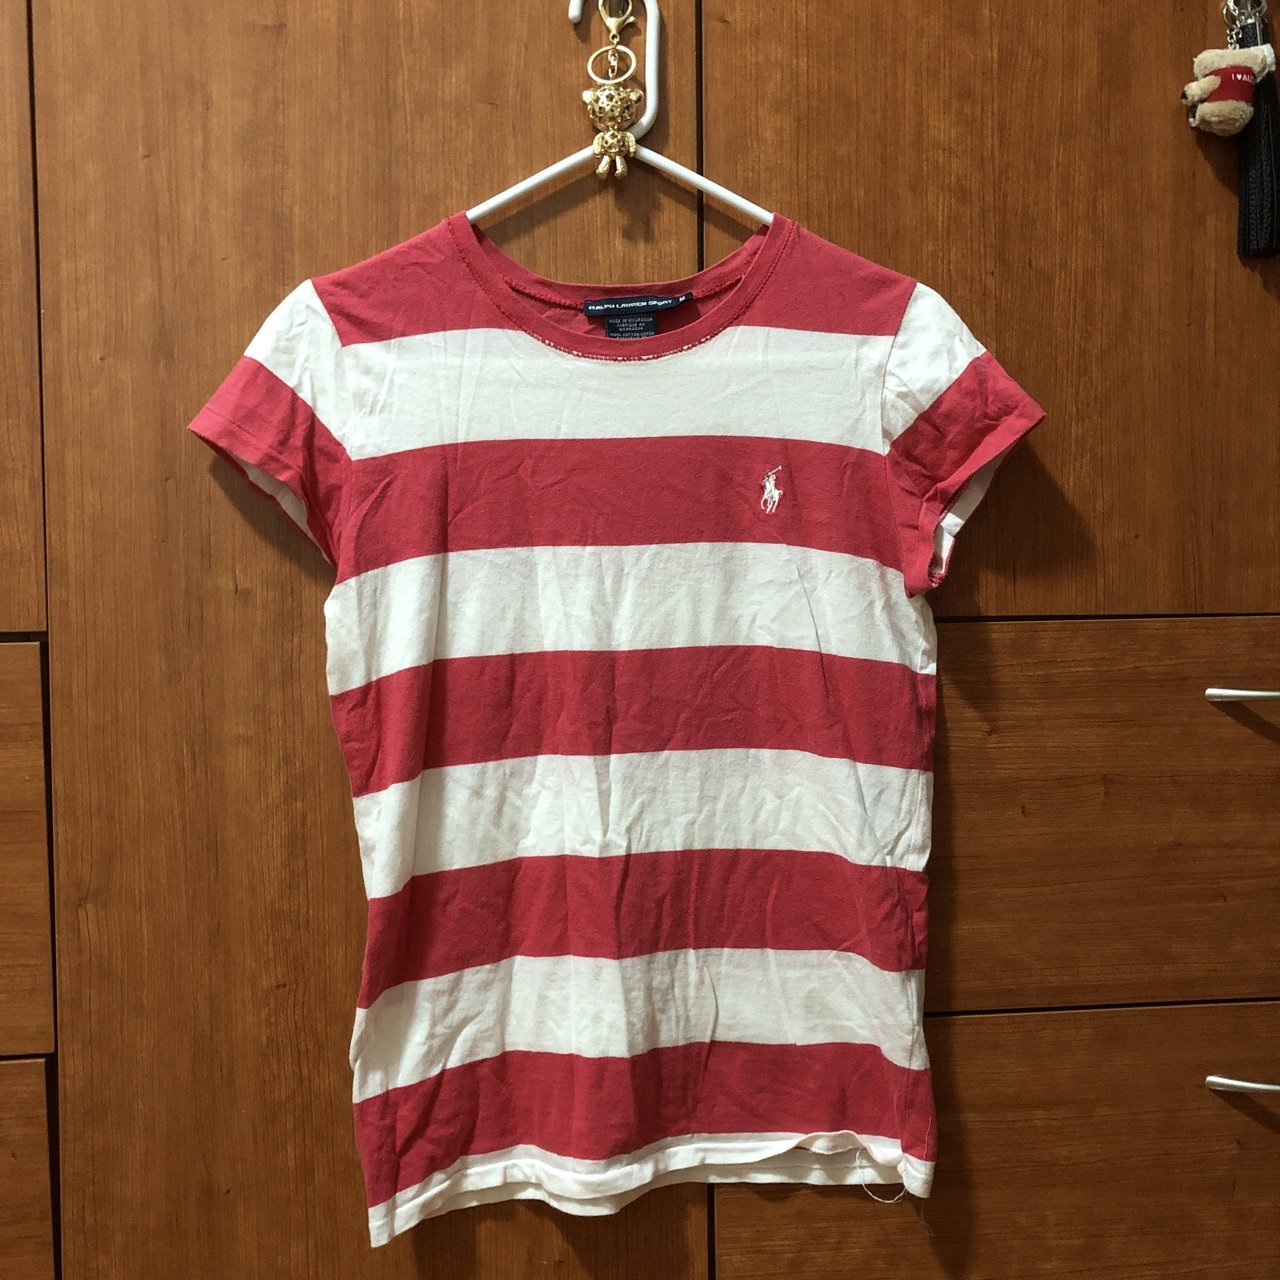 a000416c28 ... shirt size large blue 93acc 89861; order gnahcm. 2 months ago. new york  united states. ralph lauren red and